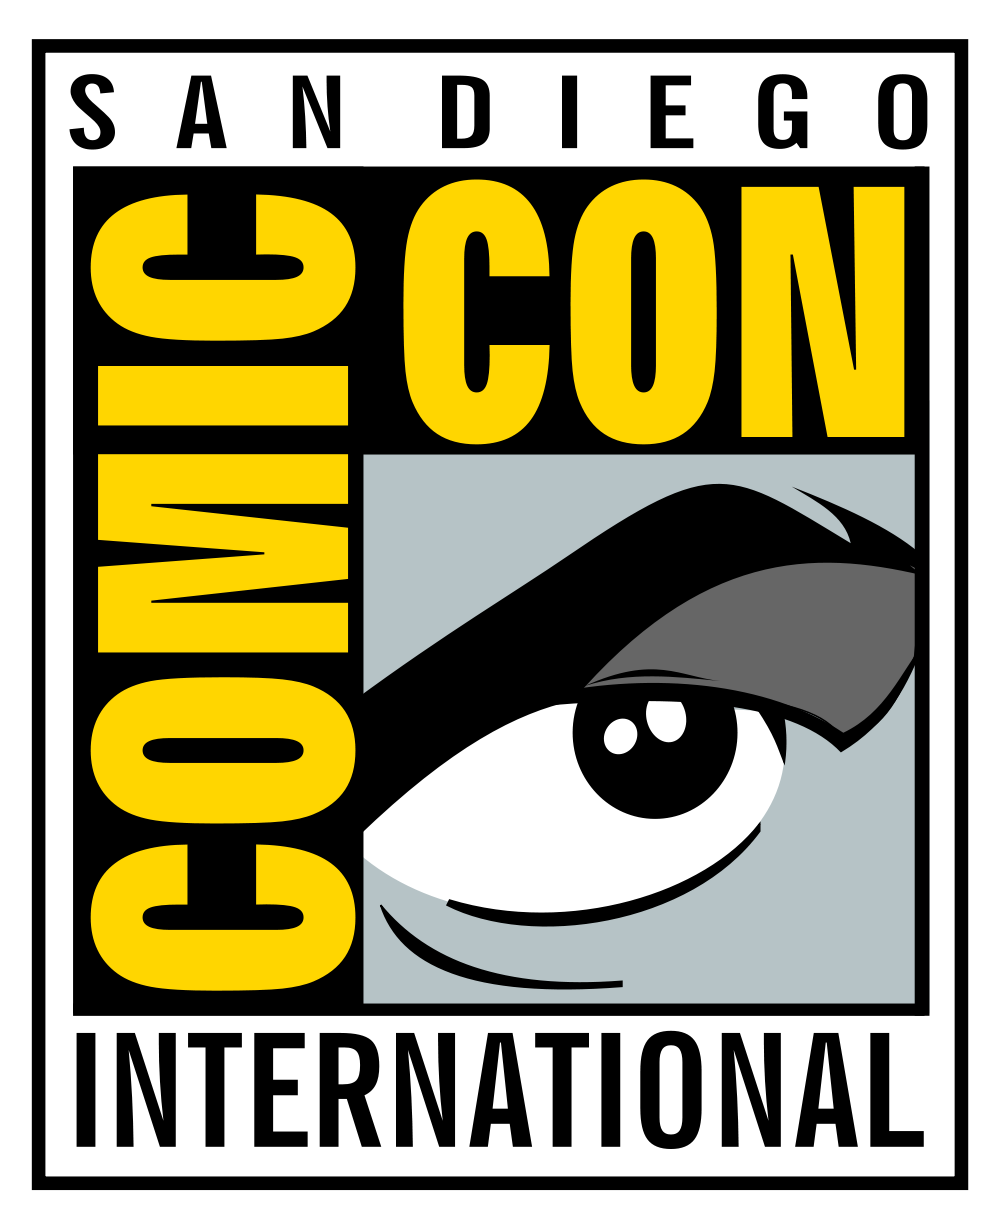 "HAPPY SAN DIEGO COMIC CON! It's the most wonderful time of the year…the high holy days…the big show…COMIC CON! My SDCC 2012 schedule is below. Please come by and say hi, I will sign any comic that has my name on it, or (almost) any body part — MUST BELONG TO YOU. WEDNESDAY 5:00p-6:00p Signing at the BOOM! Studios booth #2743 THURSDAY 10:00a-11:00a Panel: Marvel: Breaking into Comics the Marvel Way — You have the talent. You have the imagination. You have the ""Go get 'em, Tiger"" determination that would make the Bullpen proud. But where do you go from there? Discover the next step in your budding comics career with world-renowned talent scout C. B. Cebulski, artist David Marquez (Ultimate Comics Spider-Man), writer Sam Humphries (Ultimate Comics Ultimates), and others as they give you all the right pointers toward getting a foot in the door at Marvel Comics. Discussing all entry points across every department, this panel is a must for all Marvel hopefuls! Room 7AB 11:00a-12:00n Signing at the Marvel Comics booth #2329 12:00n-1:00p Panel: Editing Comics the BOOM! Studios Way — Top creators Sam Humphries (Ultimates, Higher Earth), Grace Randolph (Supurbia, Marvel HER-oes), Caleb Monroe (Ice Age, Steed & Mrs. Peel), and Michael Alan Nelson (Valen the Outcast, 28 Days Later) join BOOM! Studios editor-in-chief Matt Gagnon and editor Dafna Pleban to talk about the ins and outs of creating comics at BOOM! Studios. Don't miss this in-depth look into the editing secrets of one of the comic book industry's leading independent publishers as they discuss editing dos and don'ts. Room 9 1:00p-2:00p Panel: Dark Horse: Powered by Creators-An In-Depth Look at the Best in Creator-Owned Comics — Just over 25 years ago, Dark Horse arrived with a different agenda than any other publisher in comics. The young company was founded on the belief that comics creators should have the option to retain the rights to their own work, and today it continues to be a highly fertile breeding ground for new characters and concepts. Self-publishing sensation Sam Humphries introduces Dark Horse publisher Mike Richardson, along with a cast of top talent from around the industry. Expect exclusive announcements, and much, much more! Room 23ABC 5:00p-6:00p Signing at the BOOM! Studios booth #2743 FRIDAY 12:30n-1:30p Panel: Marvel: Ultimate Comics — The Ultimate Universe will be shaken to its core in the mega-event Divided We Fall. But what happens after the fall? Find out with writer Sam Humphries (Ultimate Comics Ultimates), Ultimate Comics editor Sana Amanat, editor-in-chief Axel Alonso, and others as they detail the shocking revelations surrounding Divided We Fall. Room 6DE 2:30p-3:30p Signing at BOOM! Studios booth #2743 3:30p-4:30p Signing at Archaia Entertainment booth #2635 SATURDAY 1:00p-2:00p Signing at BOOM! Studios booth #2743 2:00p-3:00p Signing at the Marvel Comics booth #2329 4:00p-5:00p Panel: BOOM! Studios/KaBOOM!/BOOM! Town Panel — Learn what's next from BOOM! as editor-in-chief Matt Gagnon, managing editor Bryce Carlson, and creatprs Dan Abnett and Andy Lanning (The Hypernaturals), Sam Humphries (Fanboys vs. Zombies, Higher Earth), Shannon Wheeler (I Thought You Would Be Funnier), and Grace Randolph(Supurbia) run down the most exciting new projects and reveal upcoming titles from BOOM! Studios, KaBOOM!, and BOOM! Town. This is a panel you won't want to miss! Room 9 5:00p-6:00p Signing at the Archaia Entrtainment booth #2635"